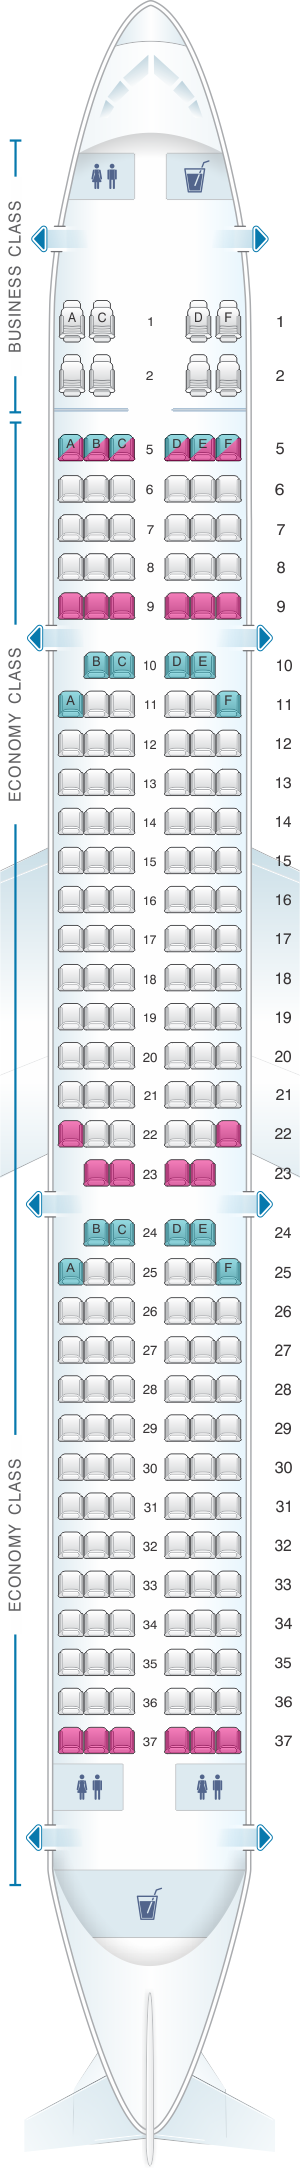 Seat map for TAP Air Portugal Airbus A321